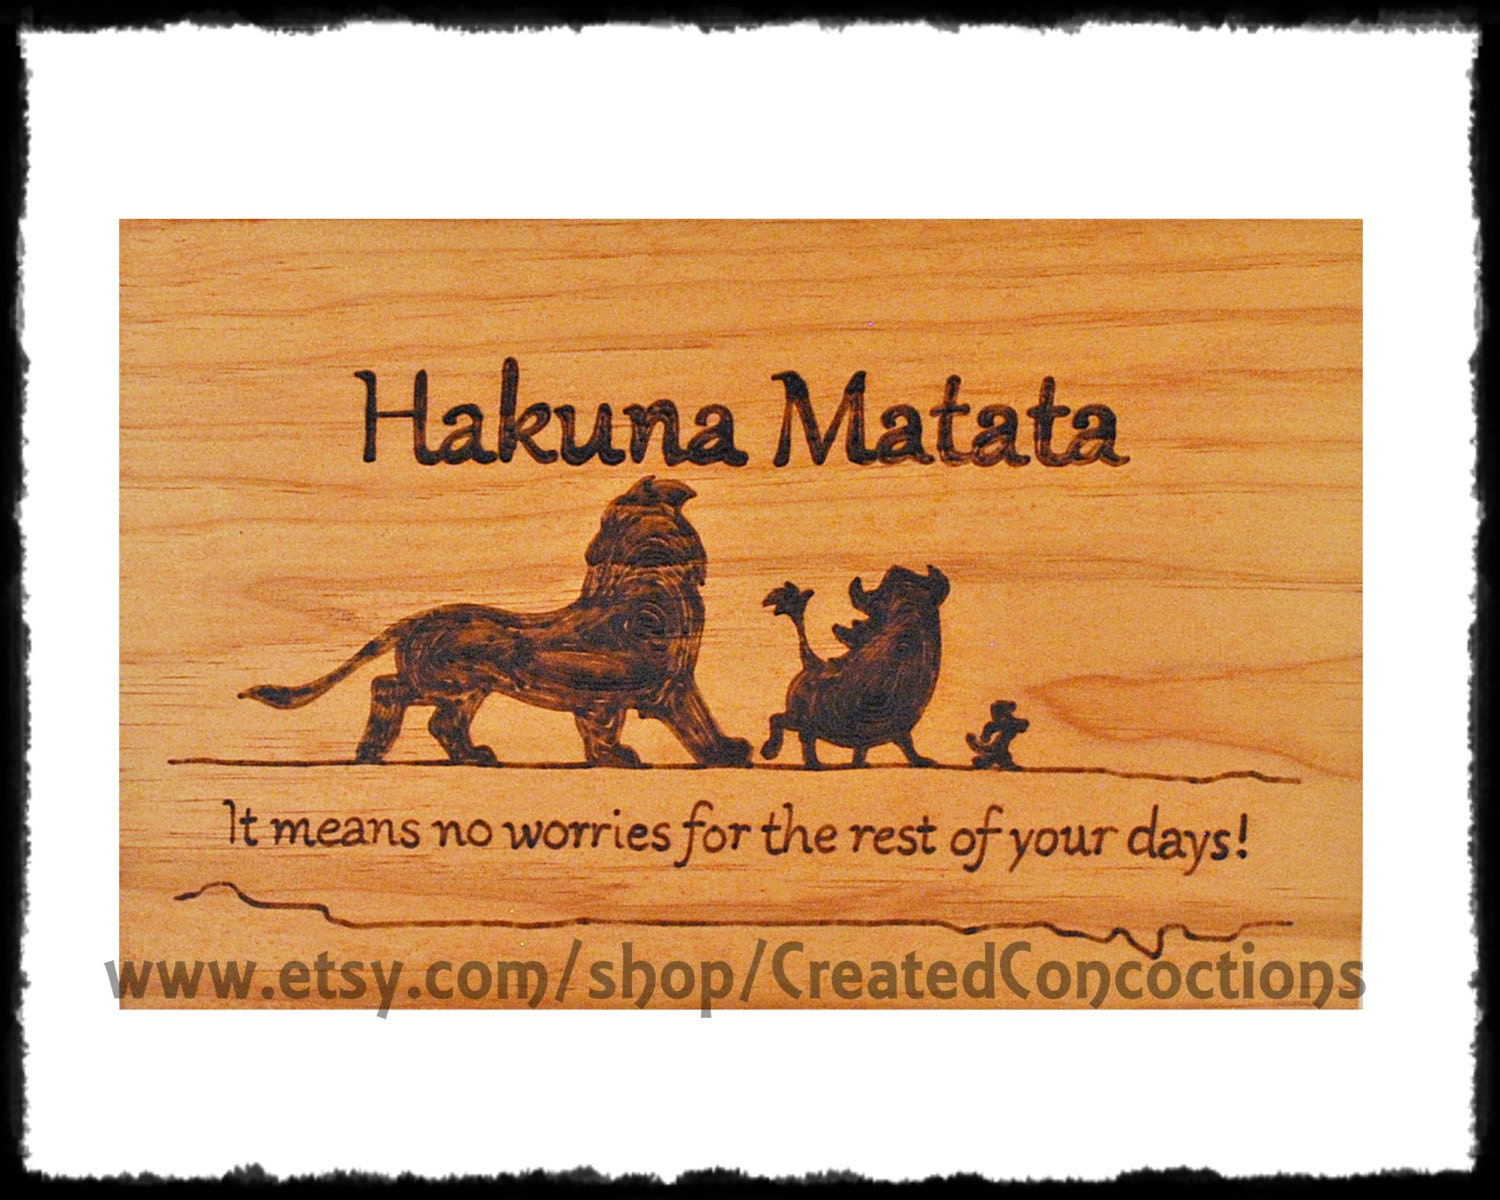 LION KING Hakuna Matata: It Means No Worries for the Rest of